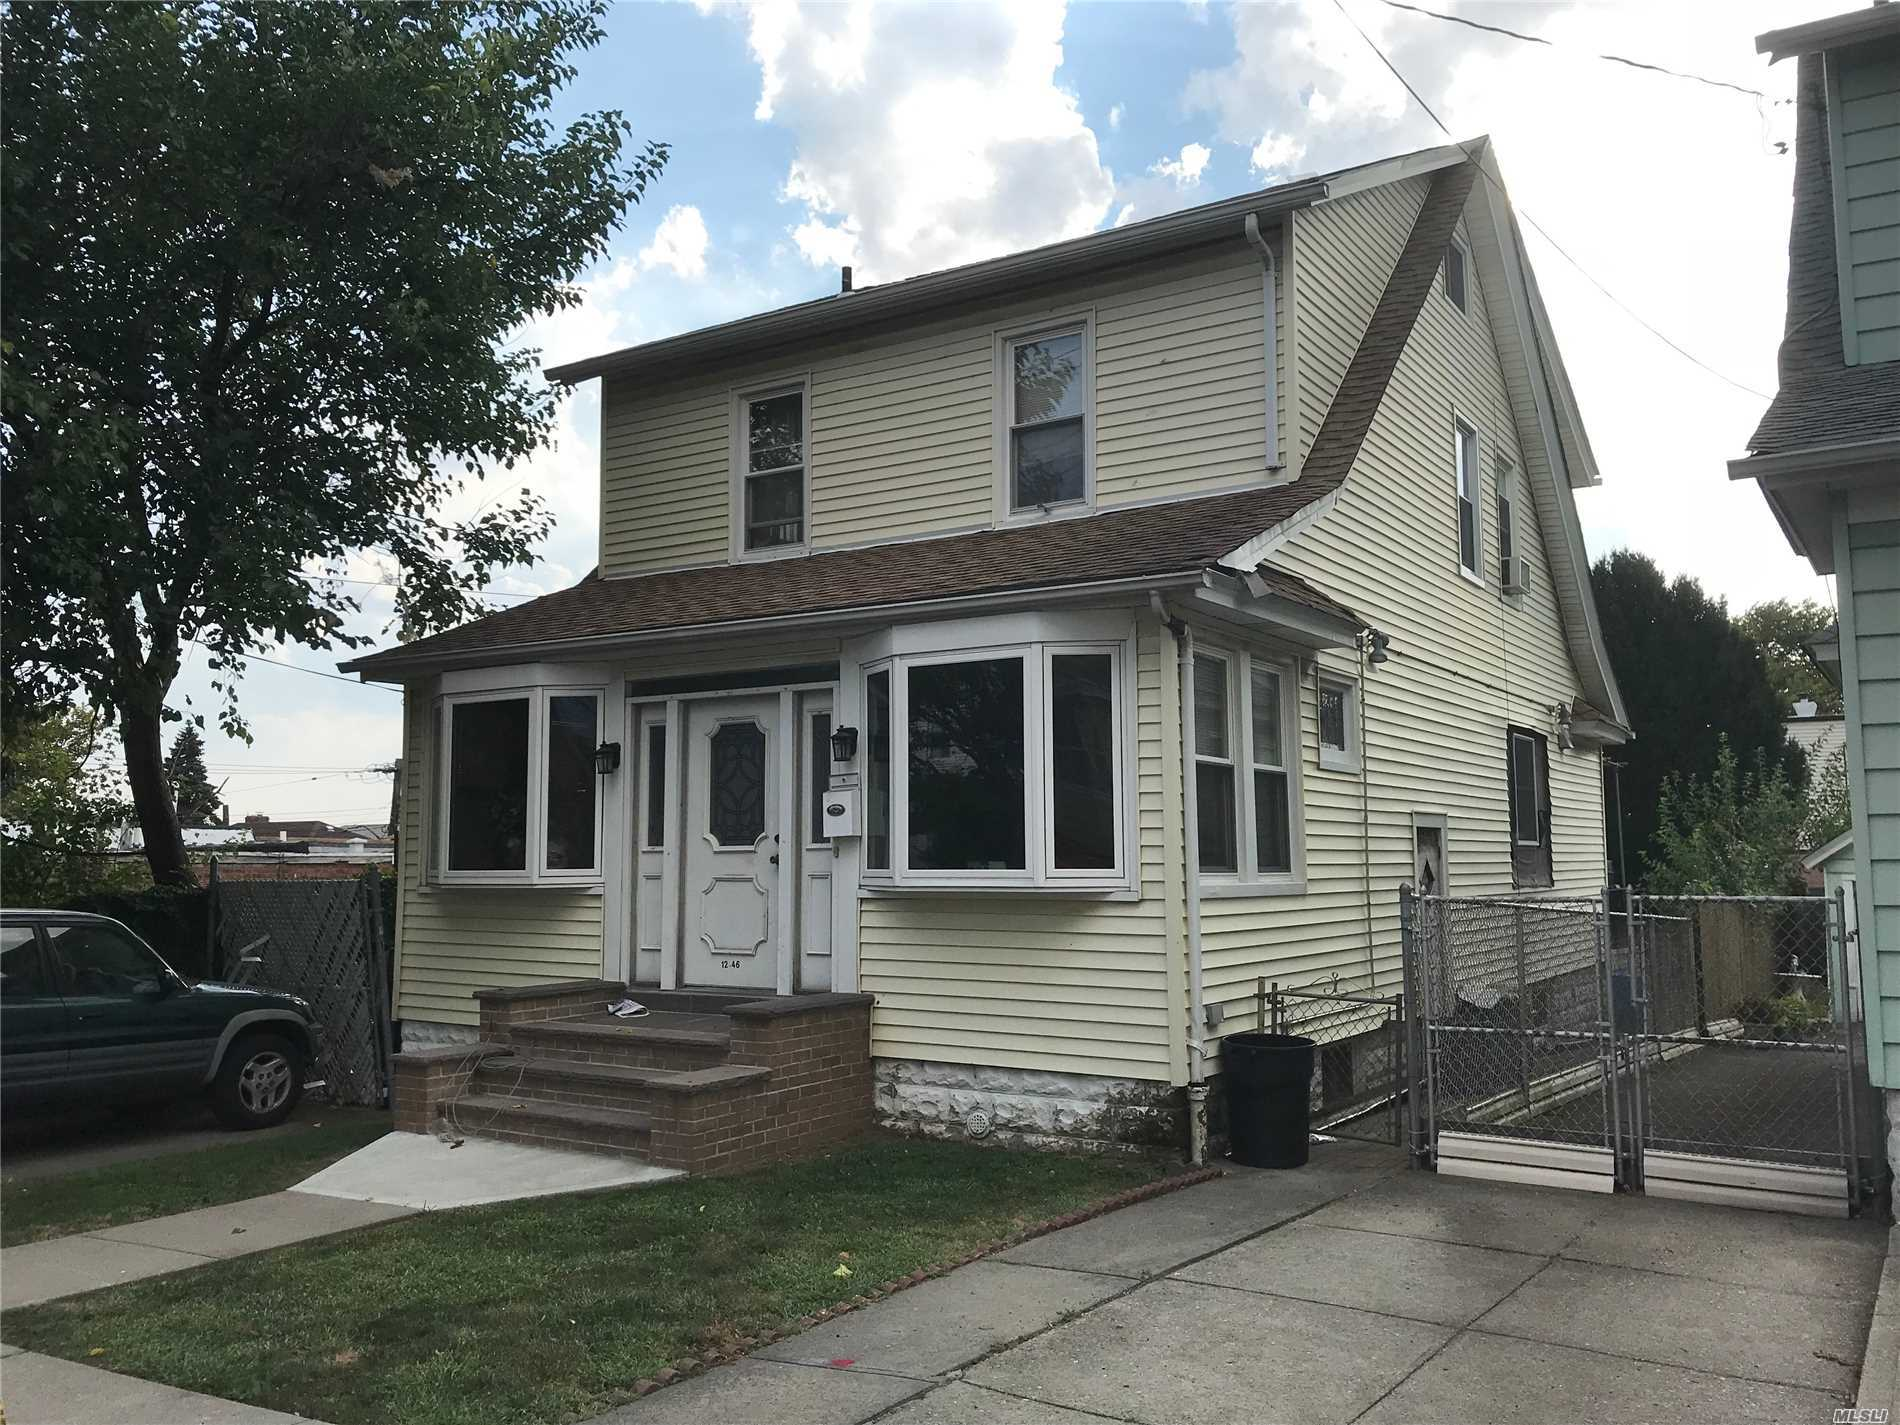 Detached Colonial W. Den, Large Living Room, Formal Dining Room, Updated Top Of Line Material With Granite Counter Top, 3 Decent Size Bedrooms, Pull Down Attic, Full Finished Basement With Sep. Ent. Det Gar With Parking, Ez To All